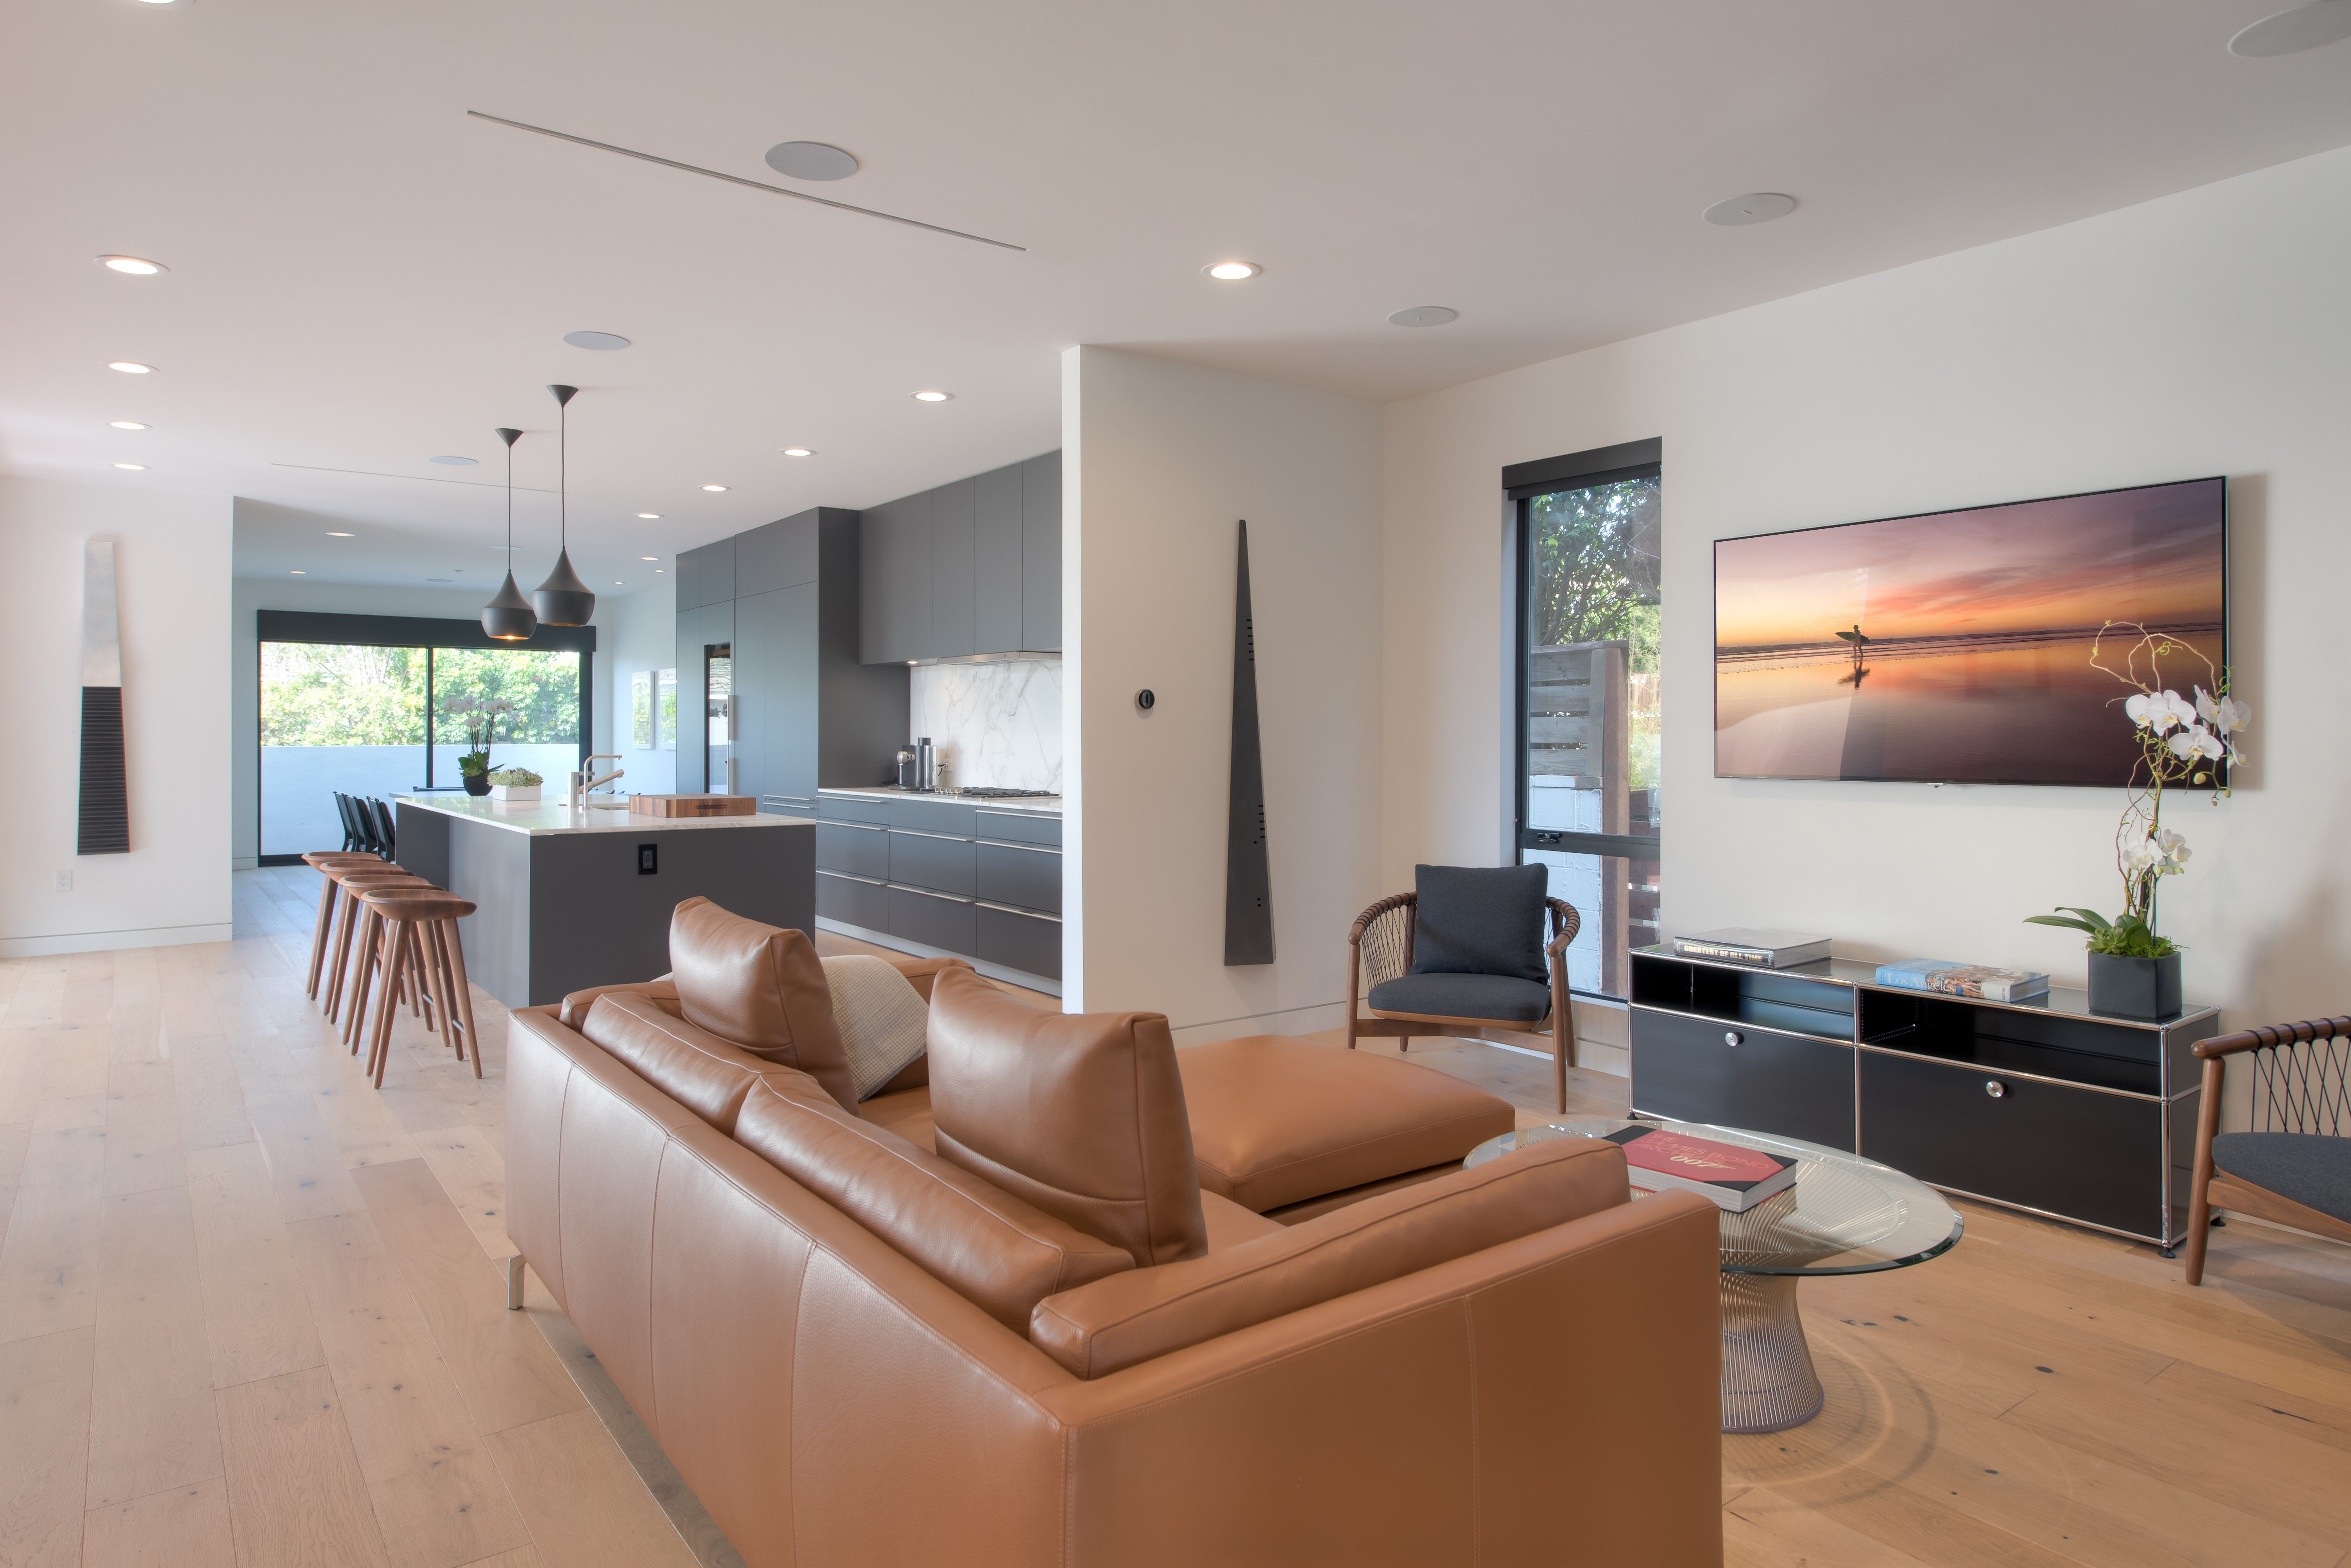 Venice CA Vacation Rental This modern home